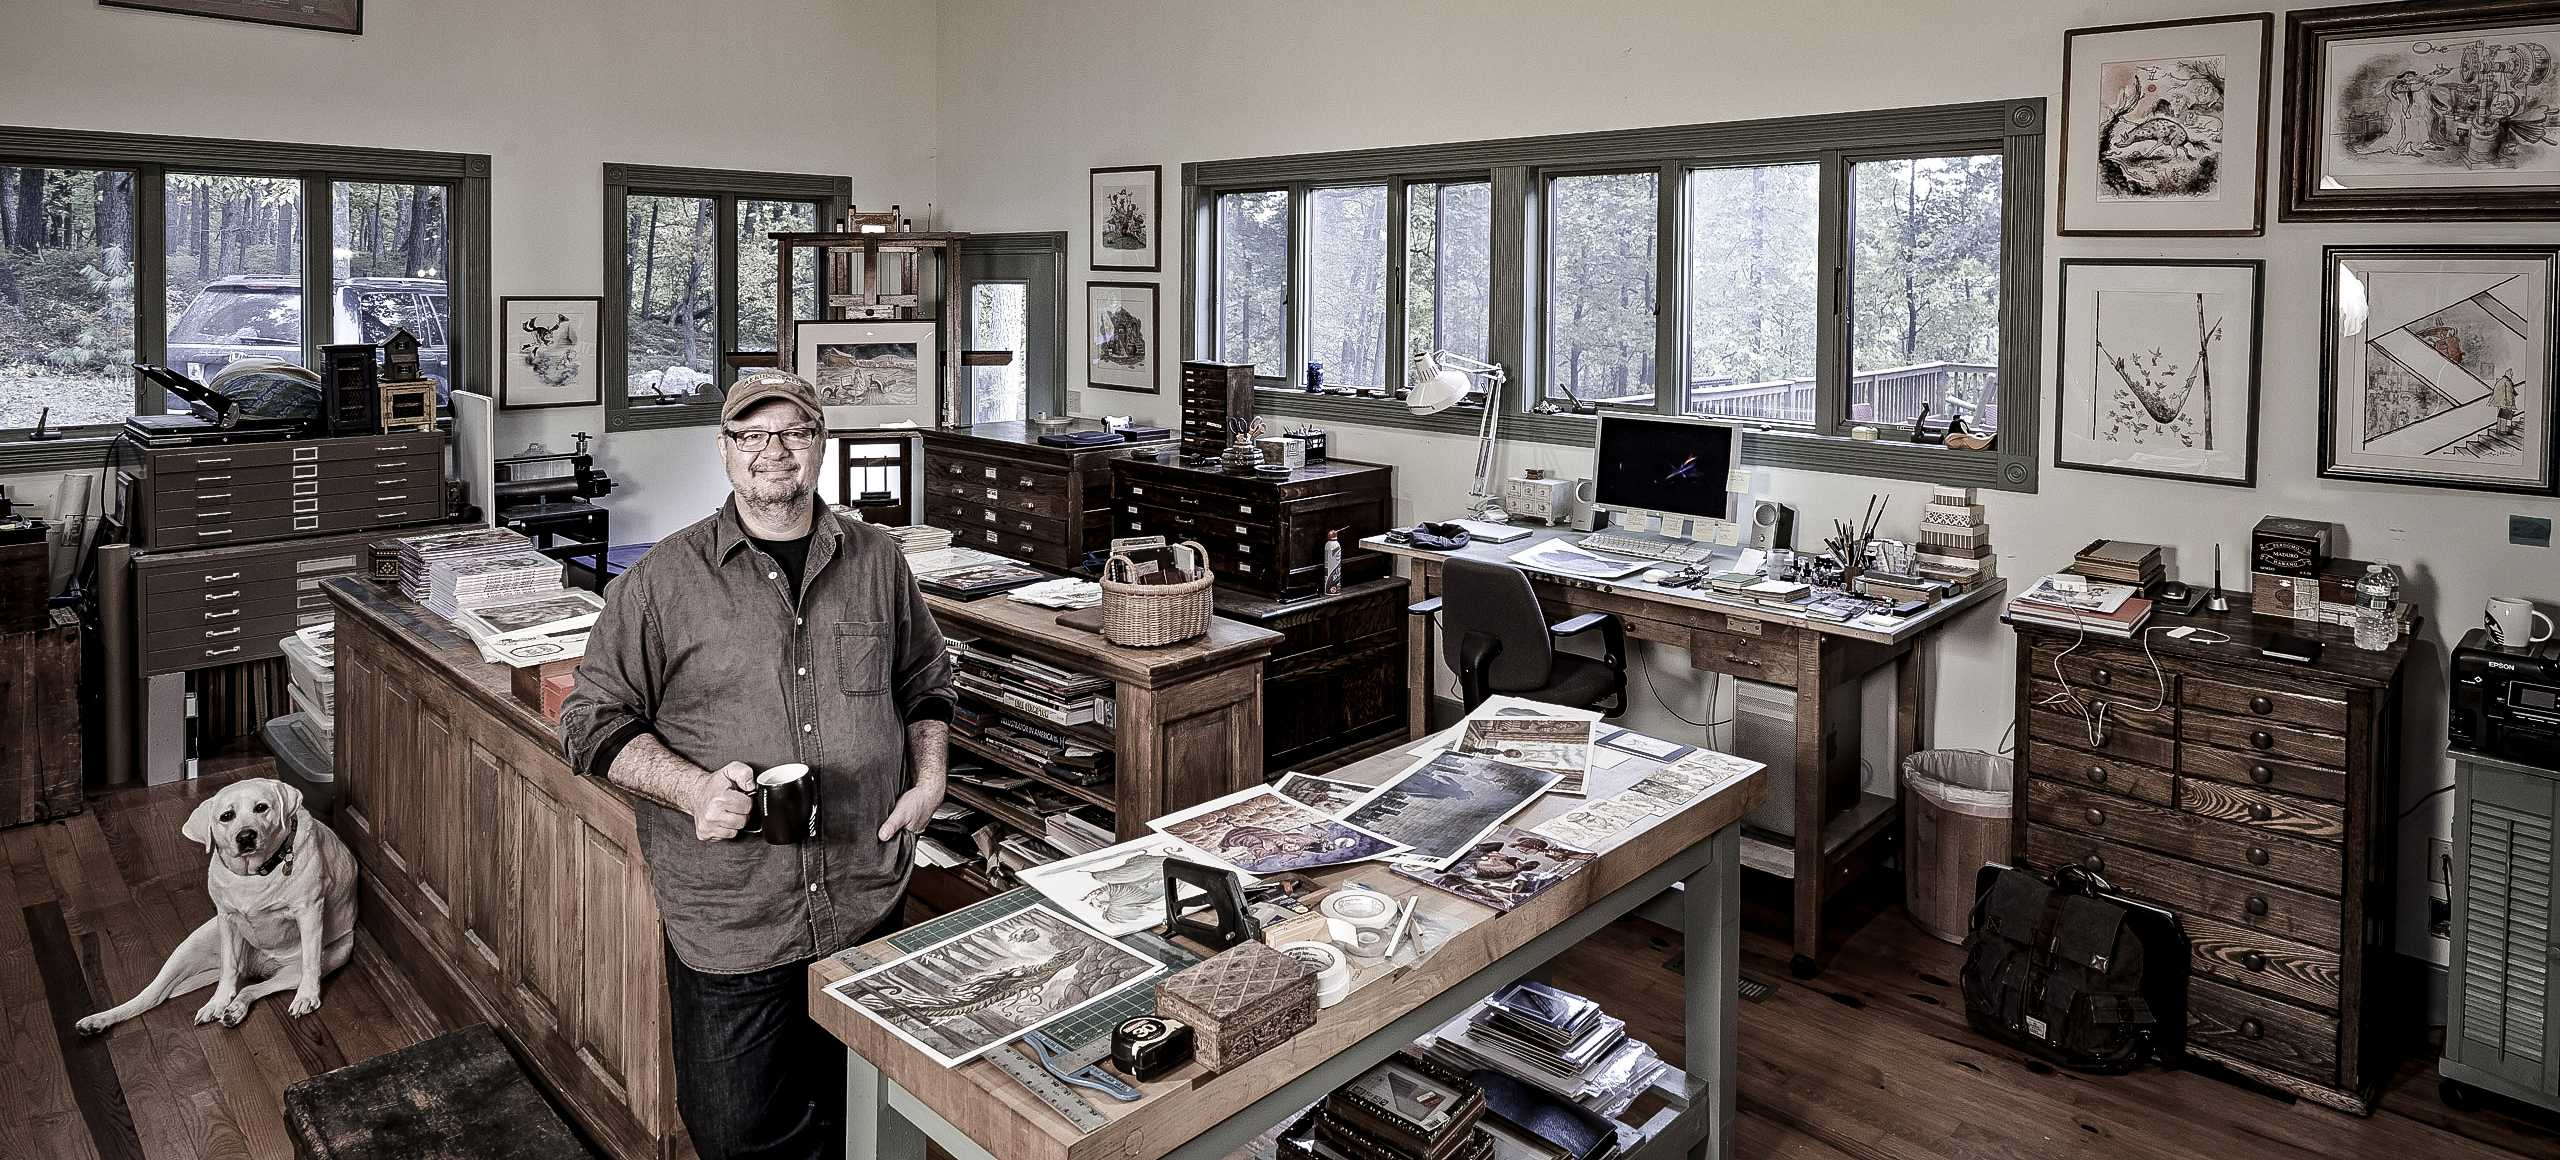 Illustrator Brian Ajhar, photographed in his Pennsylvania Studio